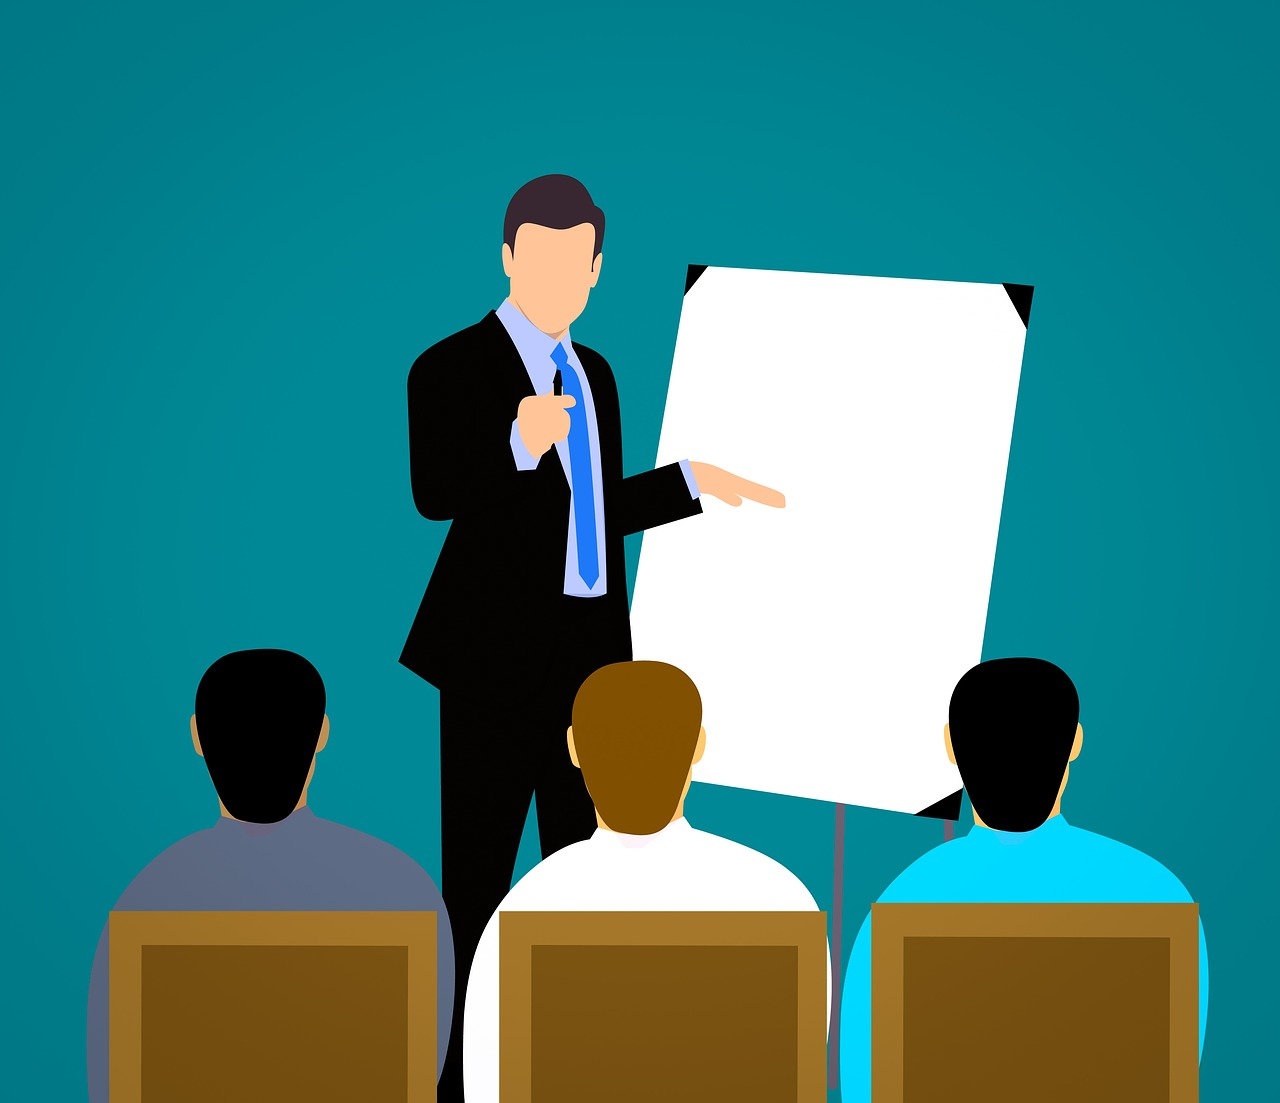 clipart of someone giving a presentation to 3 people